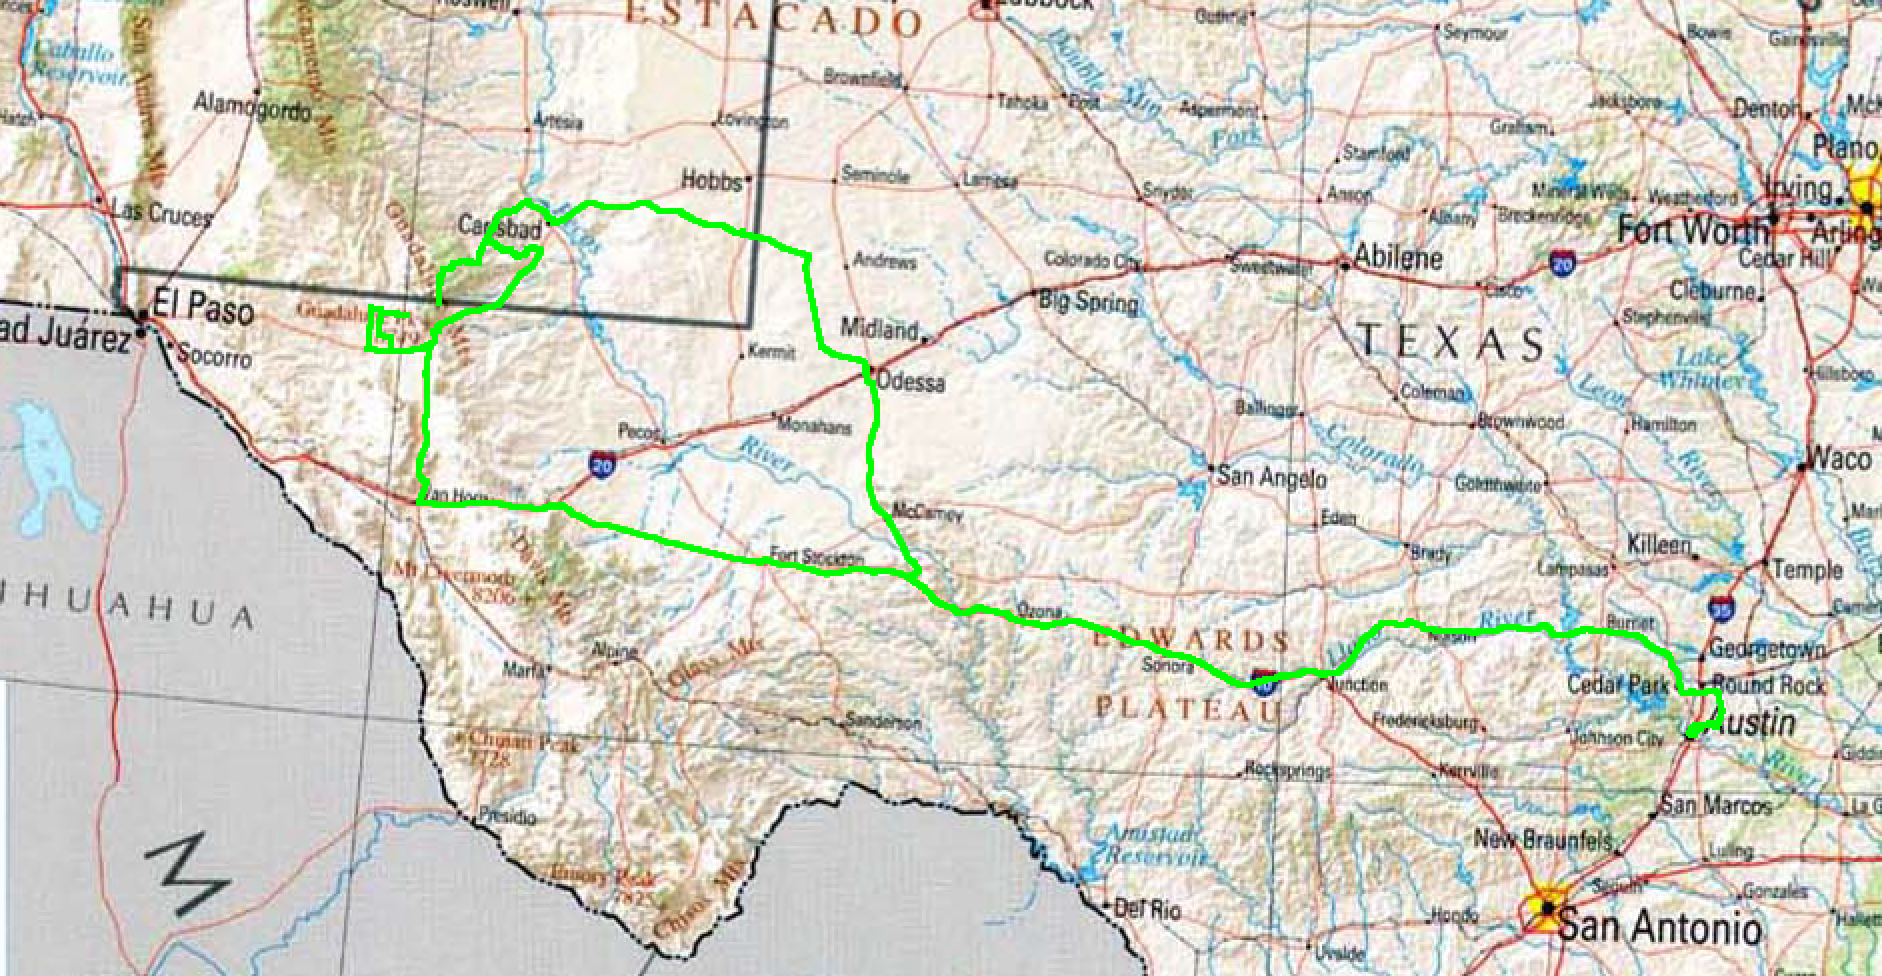 Map of West Texas and southern New Mexico with route driven highlighted in green.